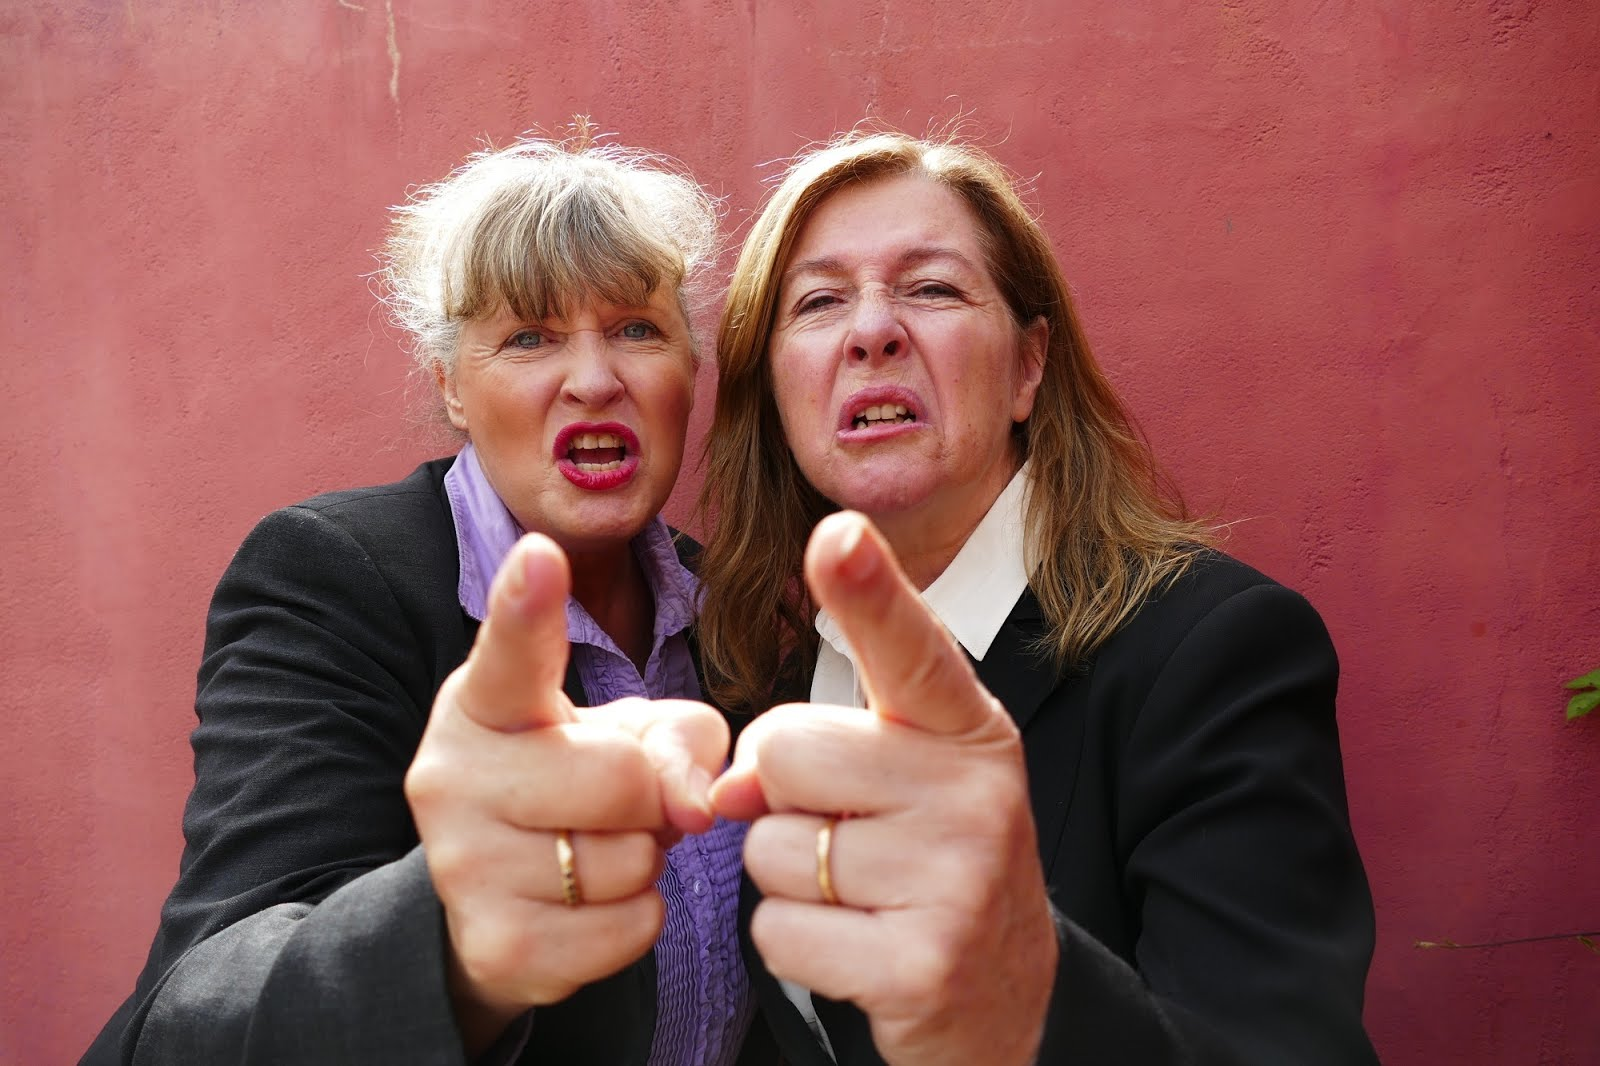 BULLY VIRUS - Workplace bullying is the new virus!